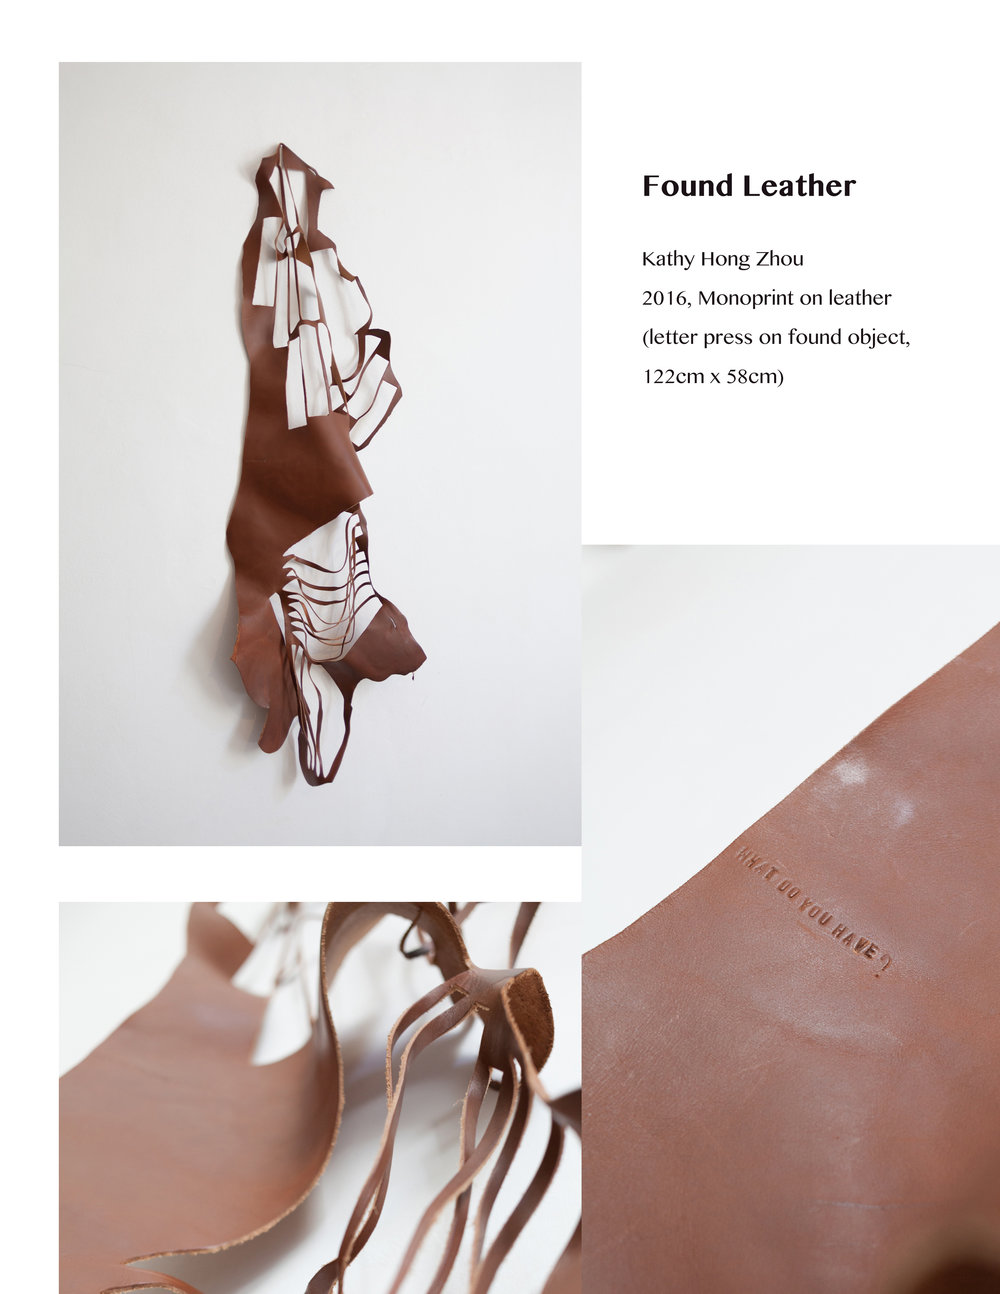 Zhou_Kathy Hong_Found Leather_122cm x 58cm.jpg